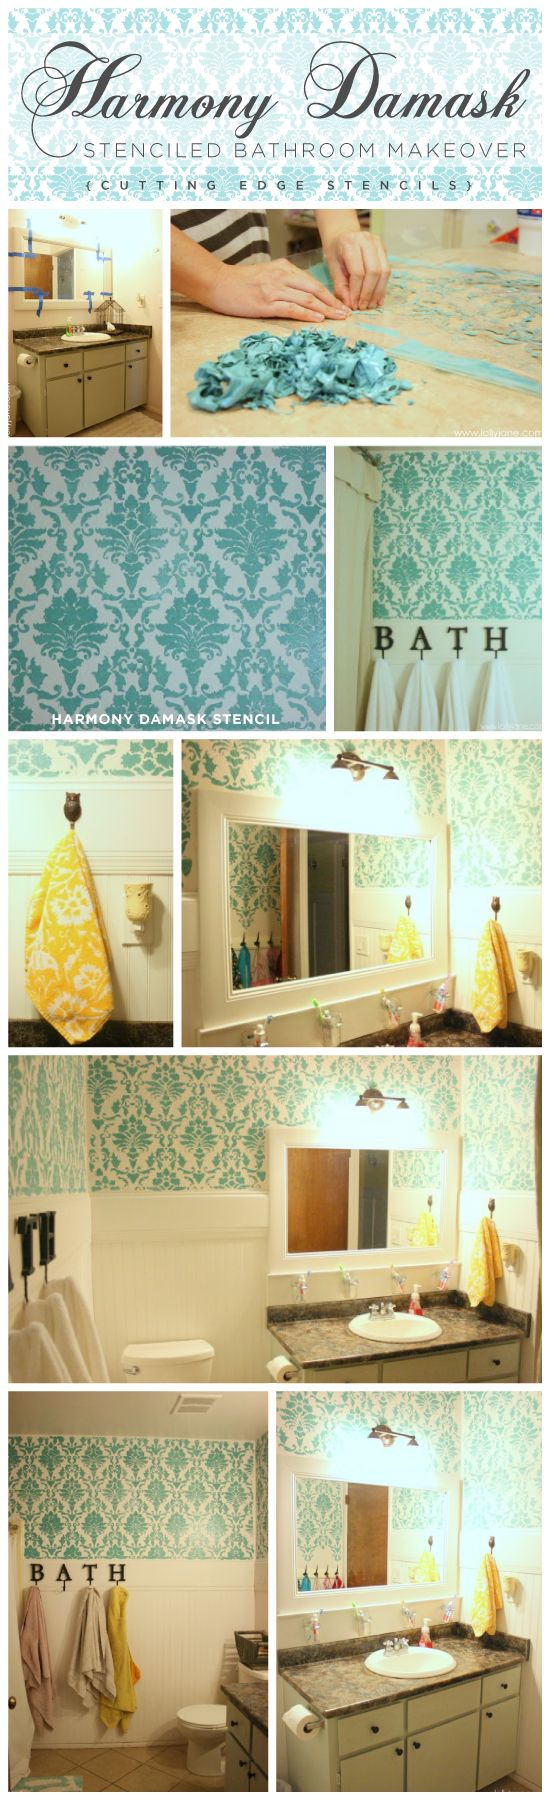 Beautiful and affordable diy bathroom makeover using the harmony damask stencil by cutting edge stencils